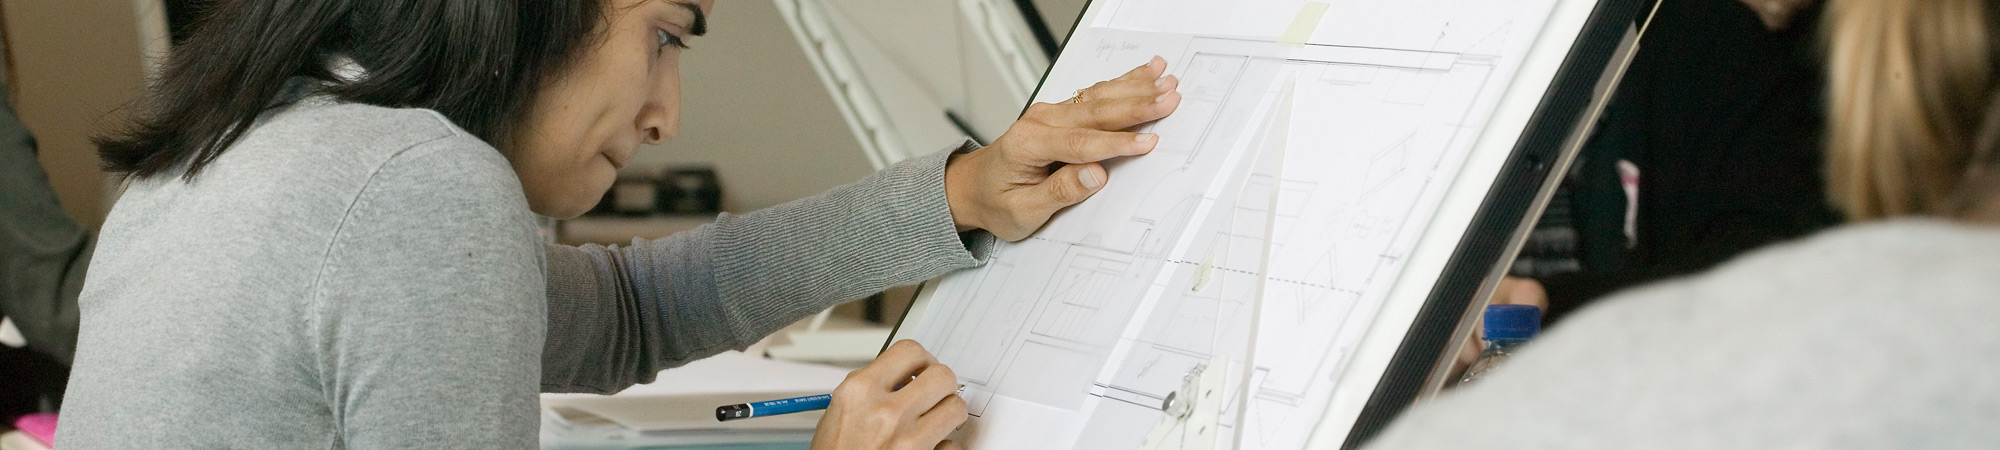 Introduction to Technical Drawing | KLC School of Design